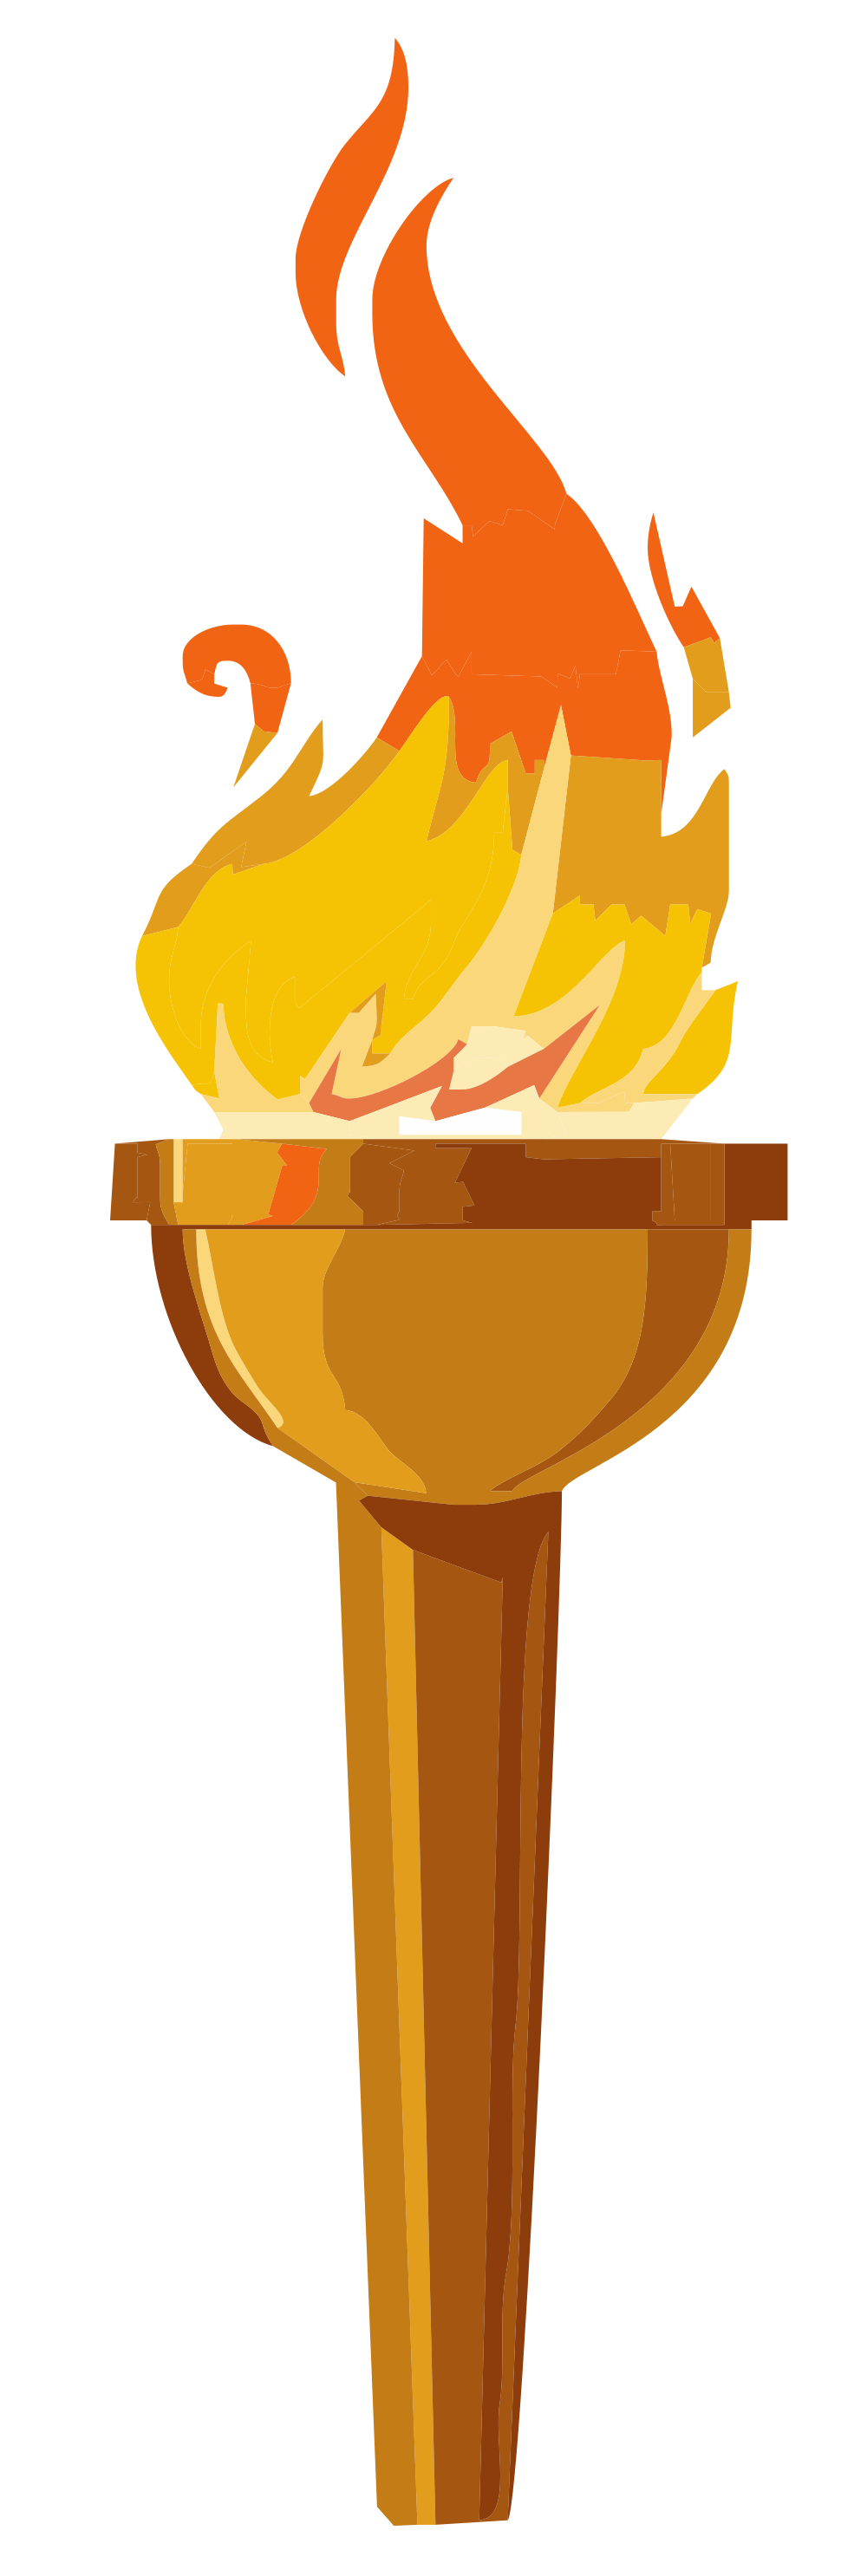 Torch clip art png. Collection of clipart